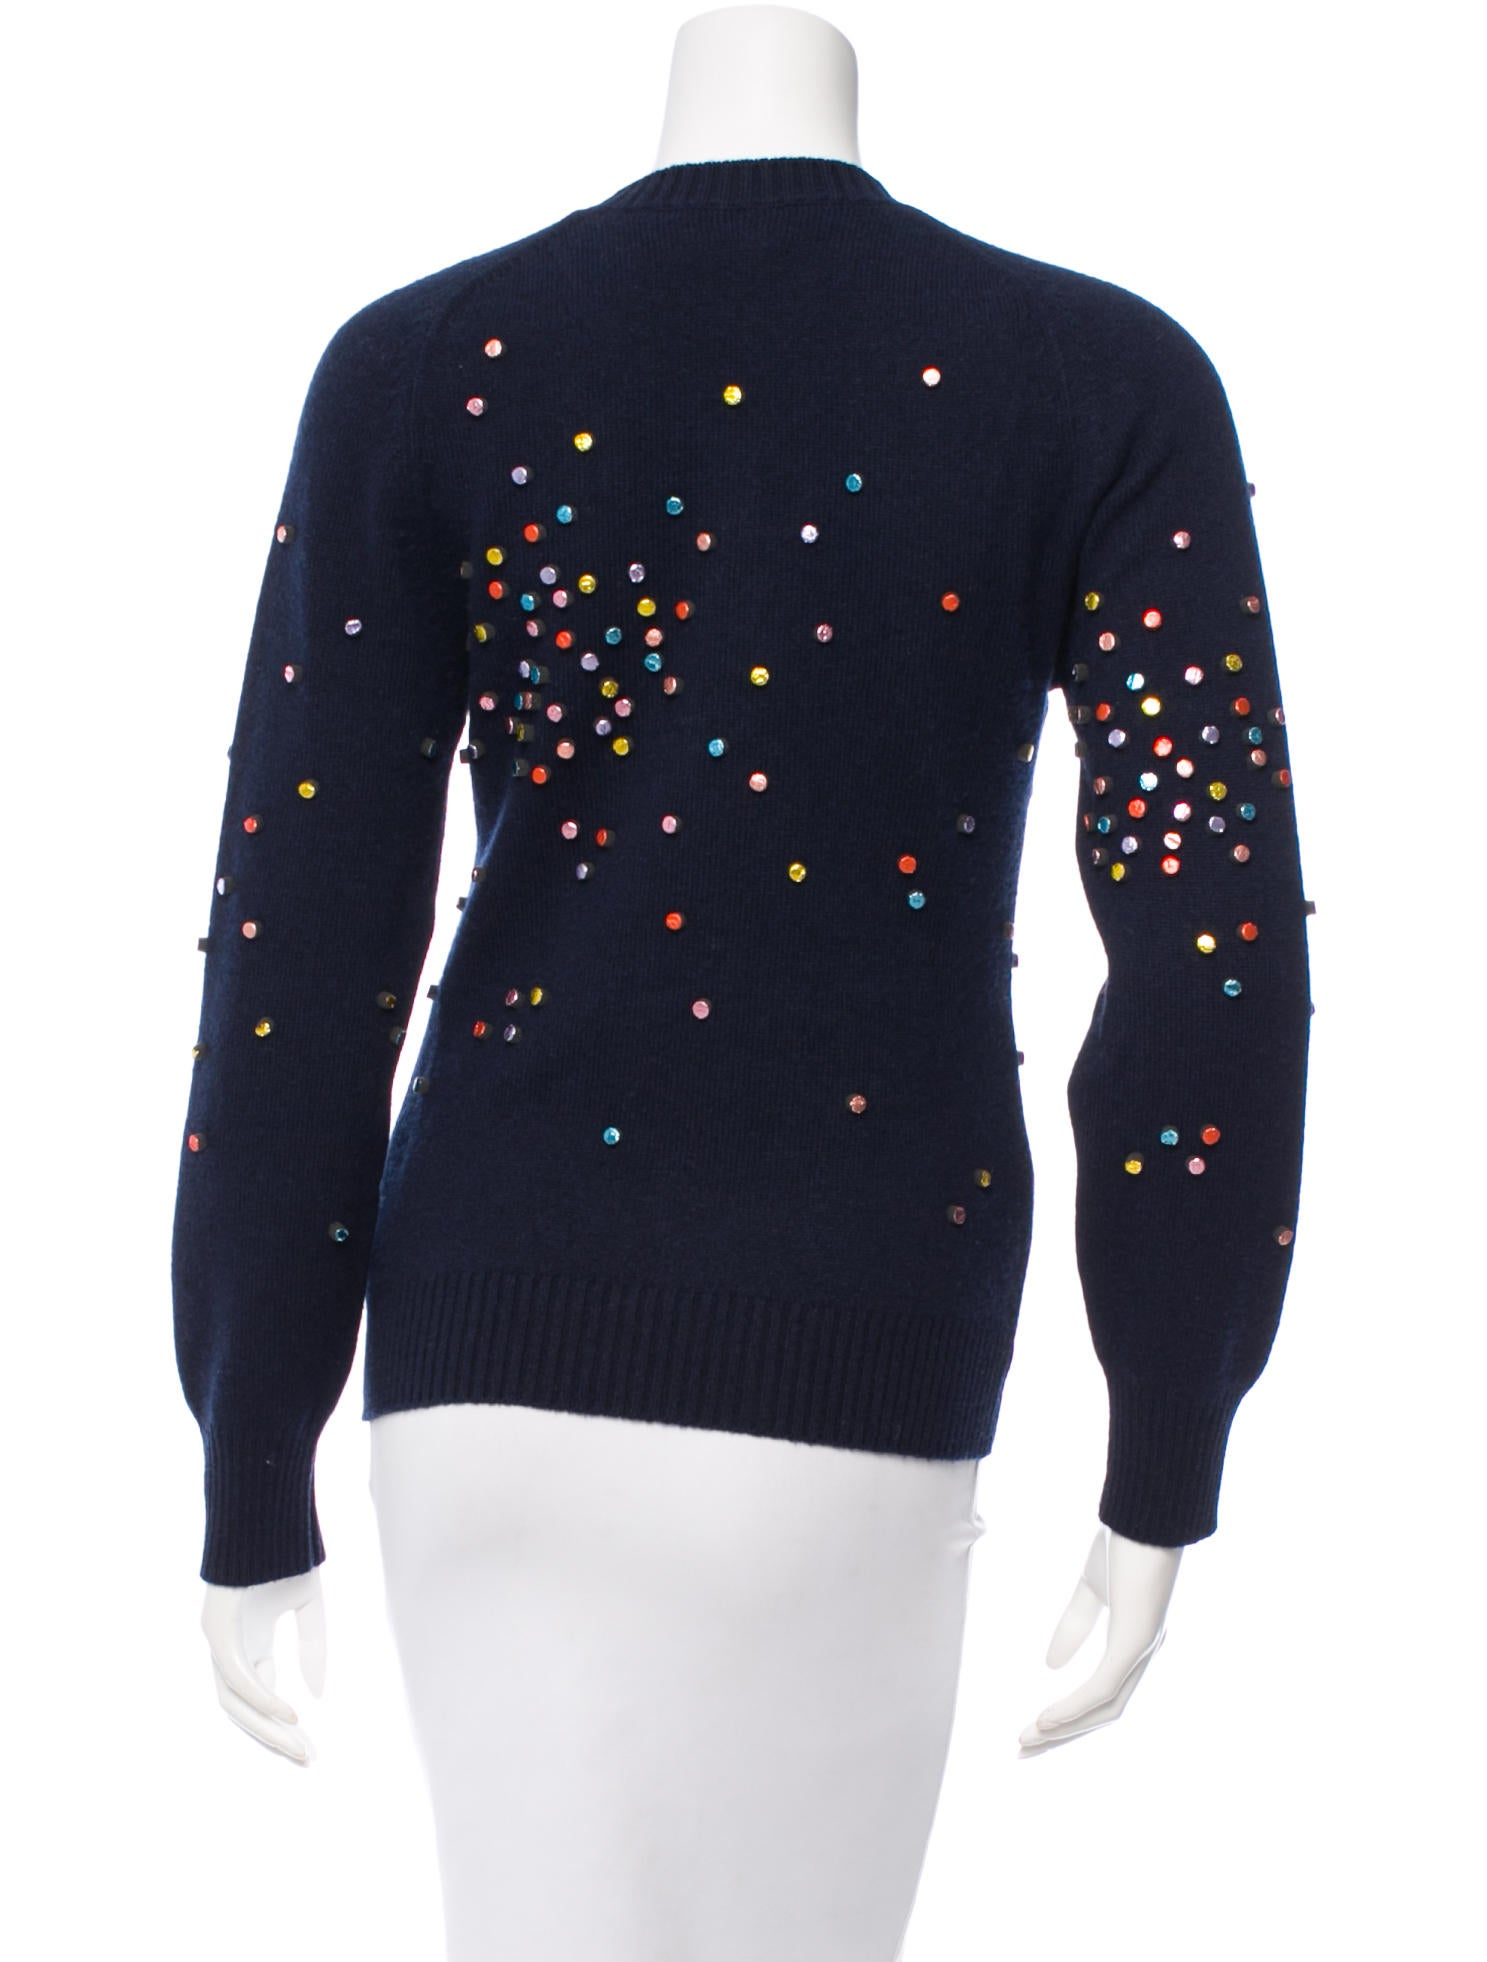 chanel prespring 2014 cashmere sweater clothing